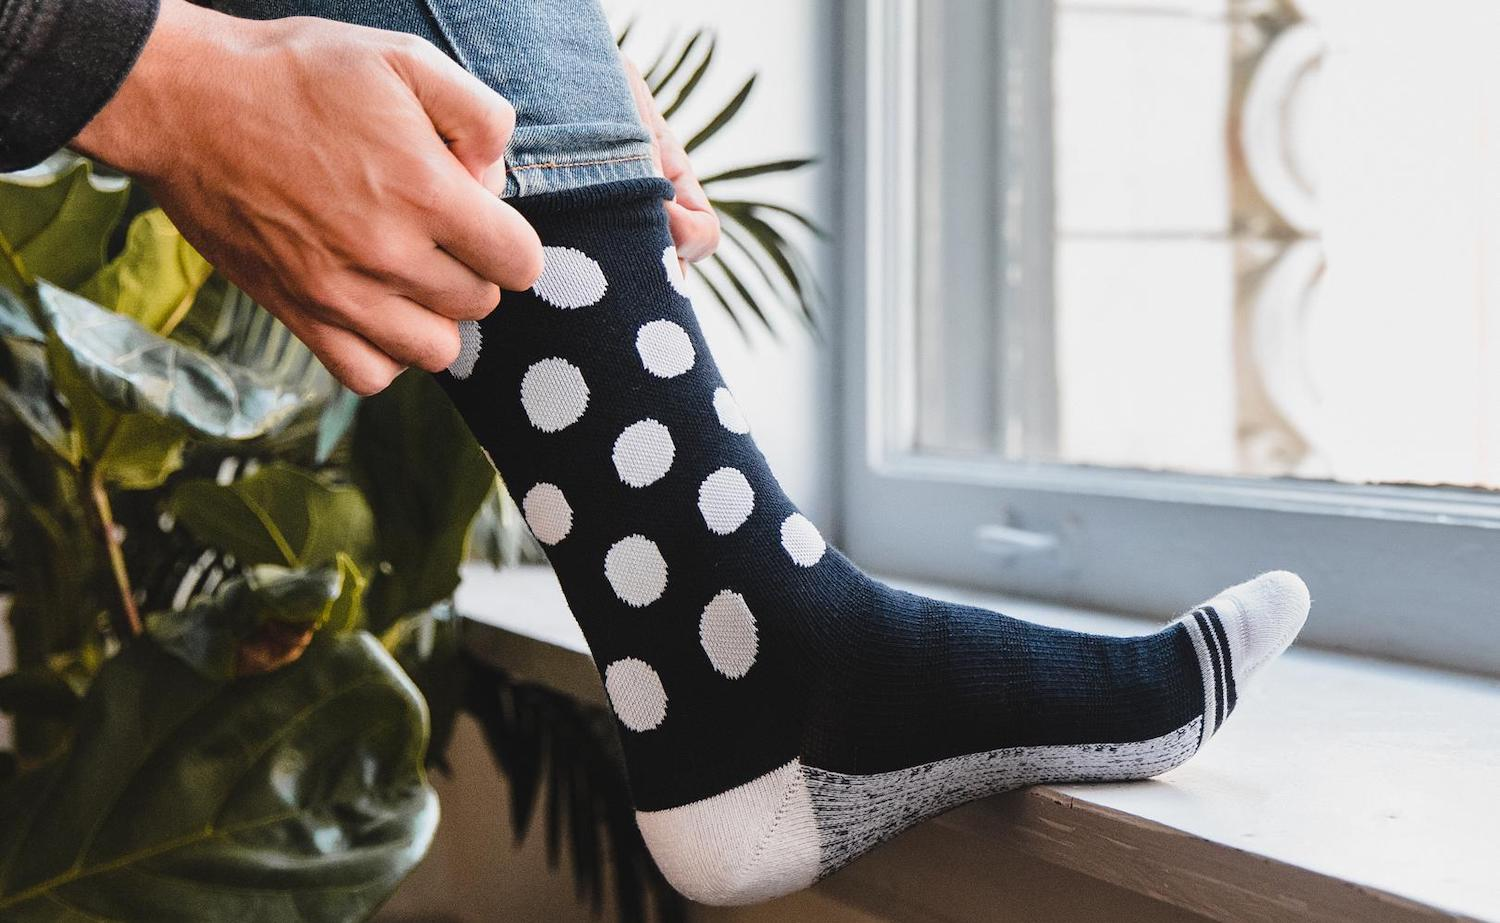 ArchTek® Arch Support Socks don't require an insole insert